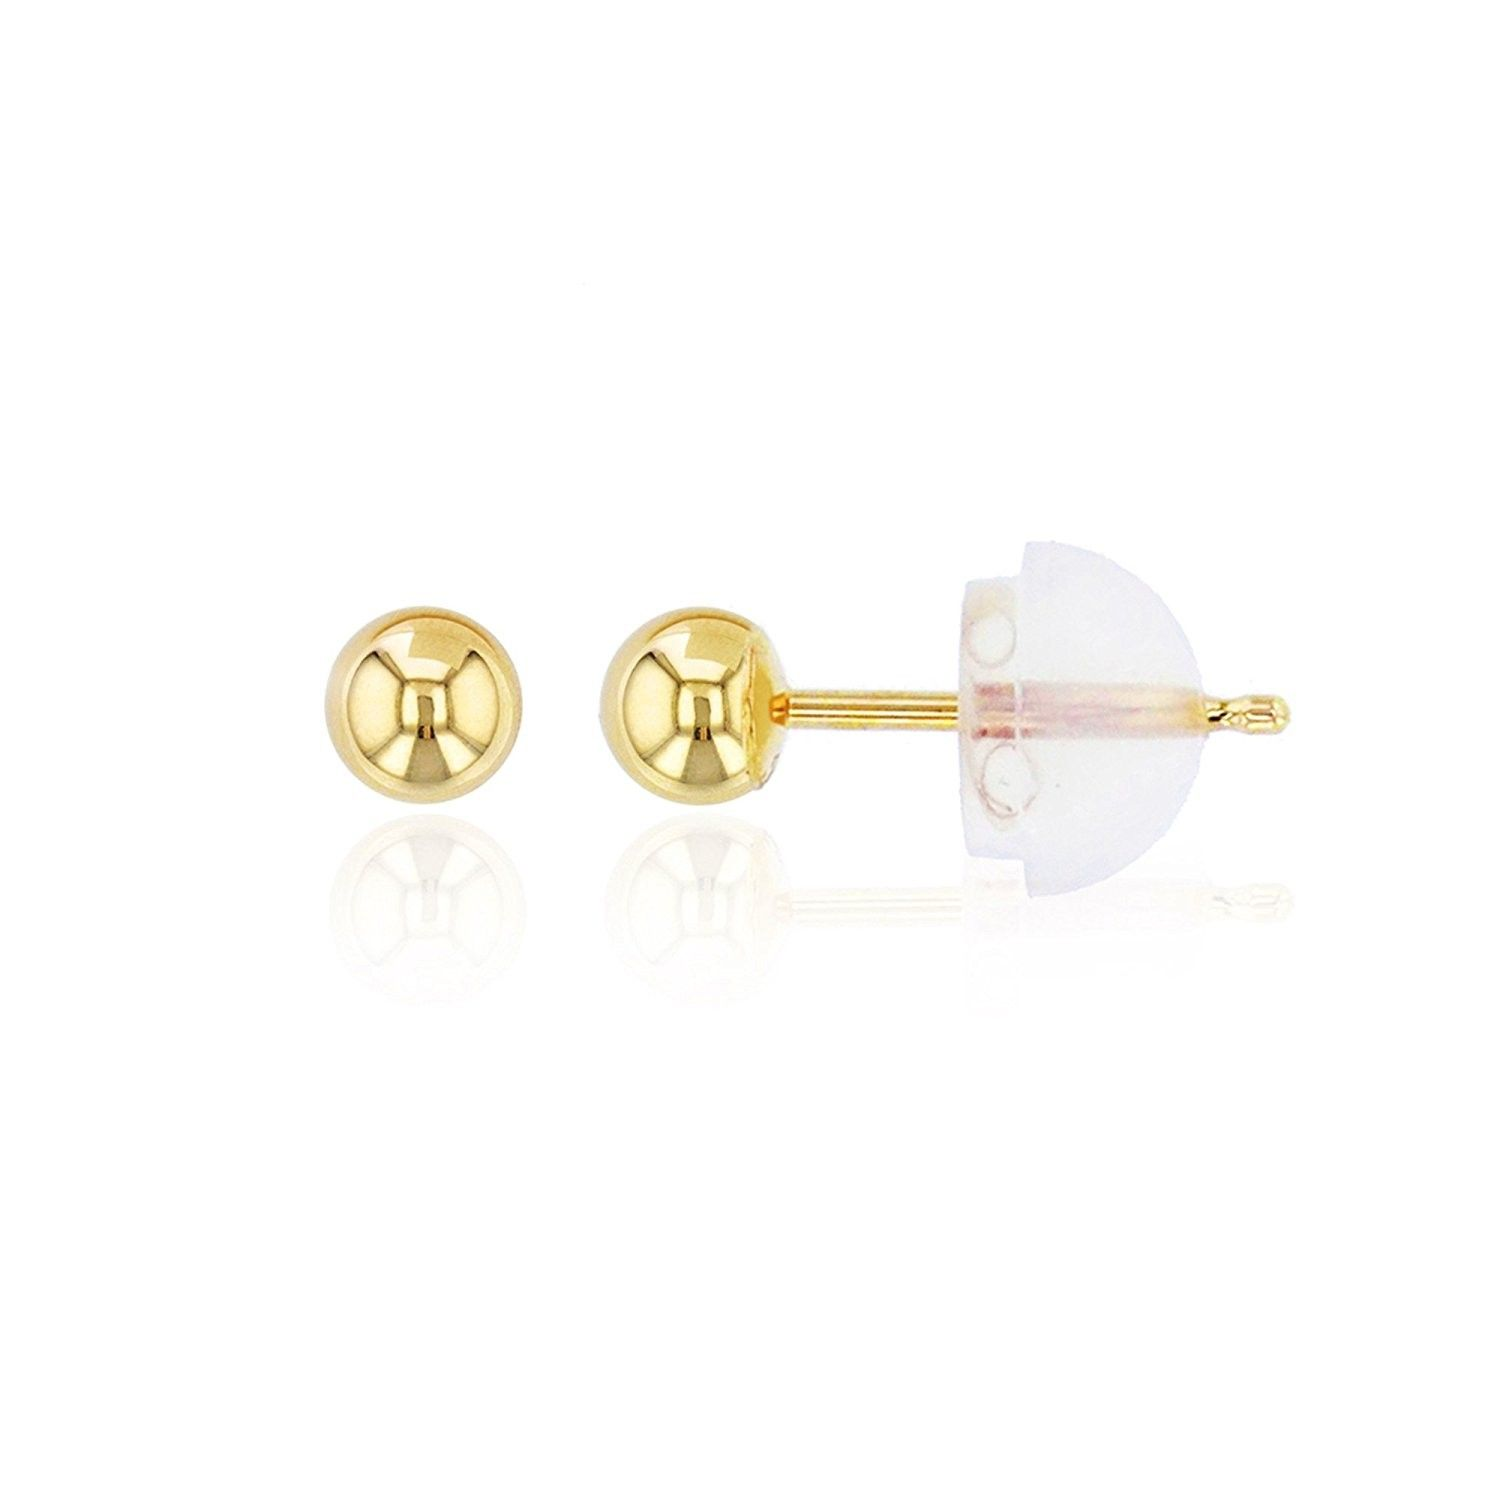 J hook nose piercing  K Gold mm Ball Stud Earring  Yellow  CCYLG  Earrings